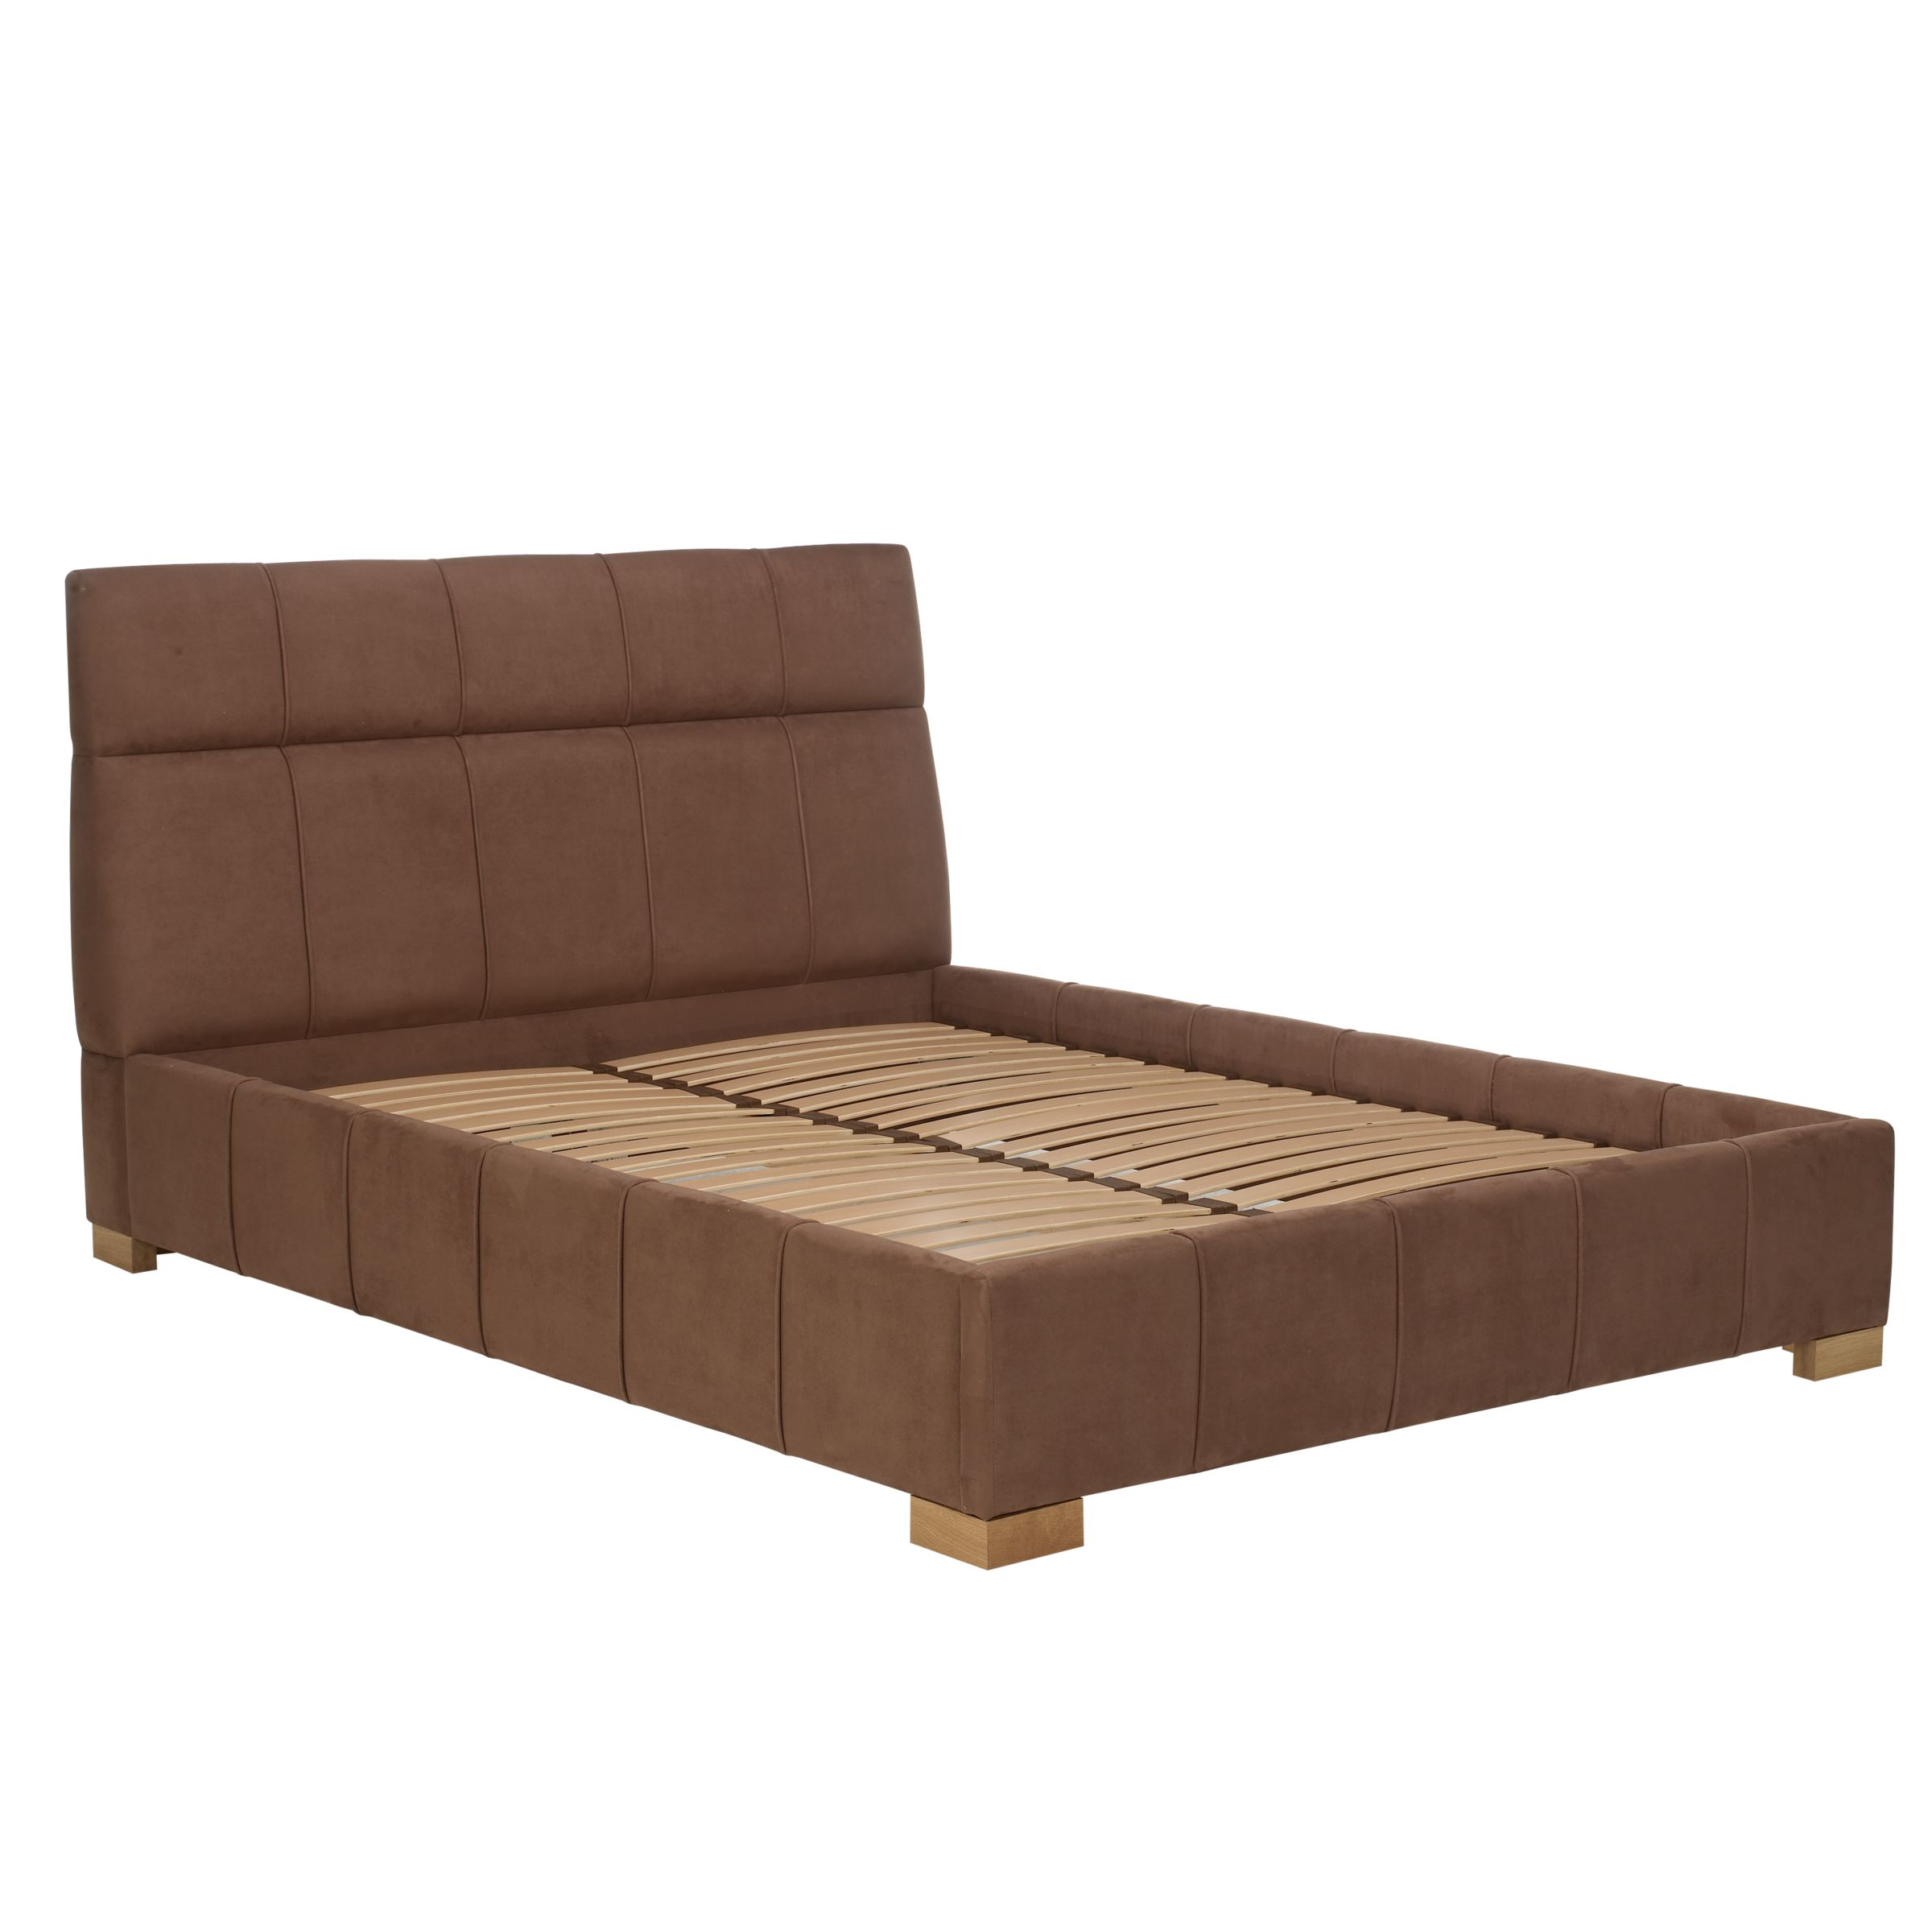 John Lewis Rochester Bedstead, Double at John Lewis